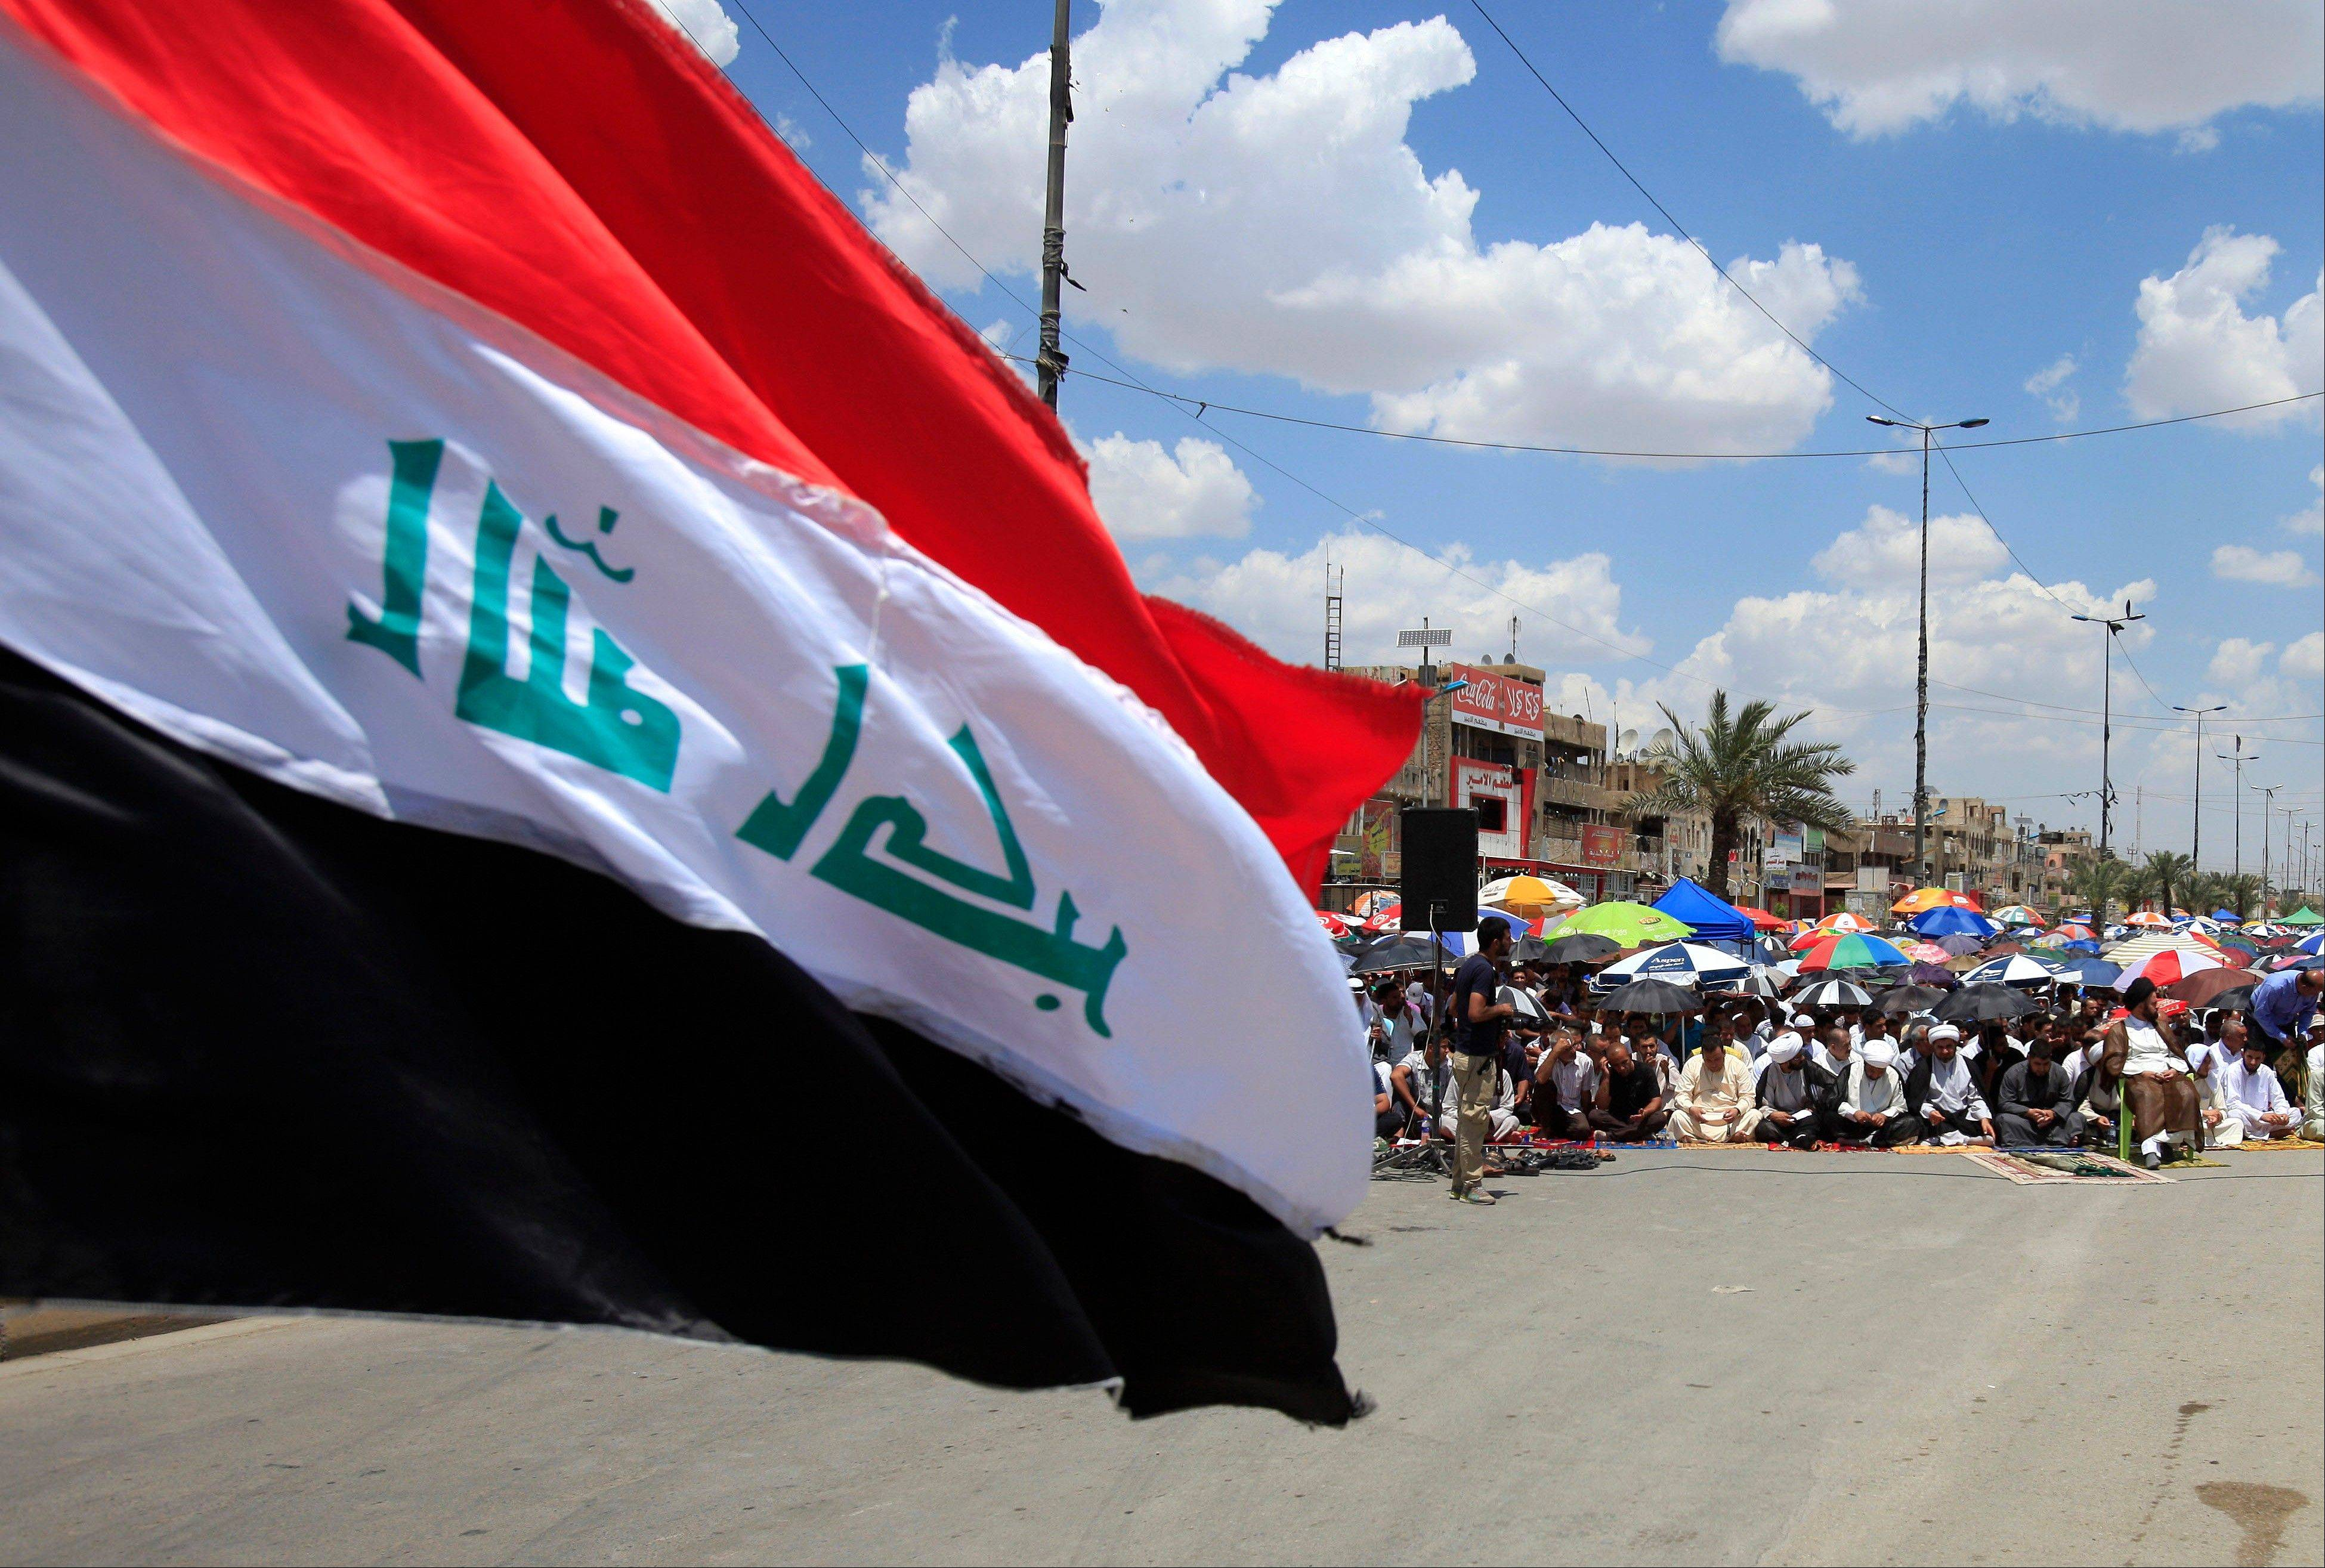 Iraq�s national flag flies as followers of radical Shiite cleric Muqtada al-Sadr attend Friday prayers in the Sadr City neighborhood in Baghdad.